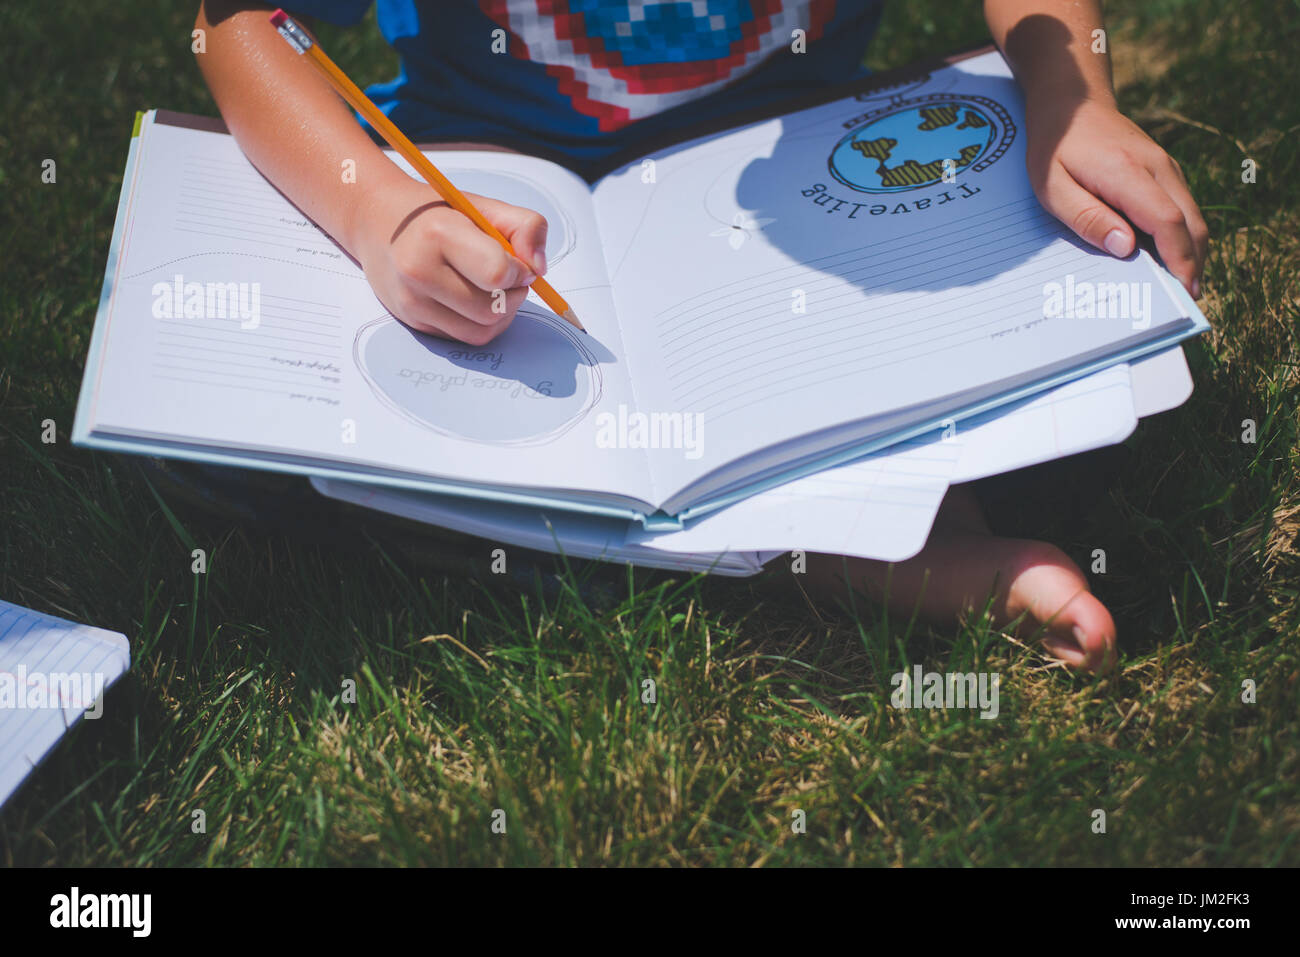 A youth writes in a notebook for school education learning back to school. - Stock Image